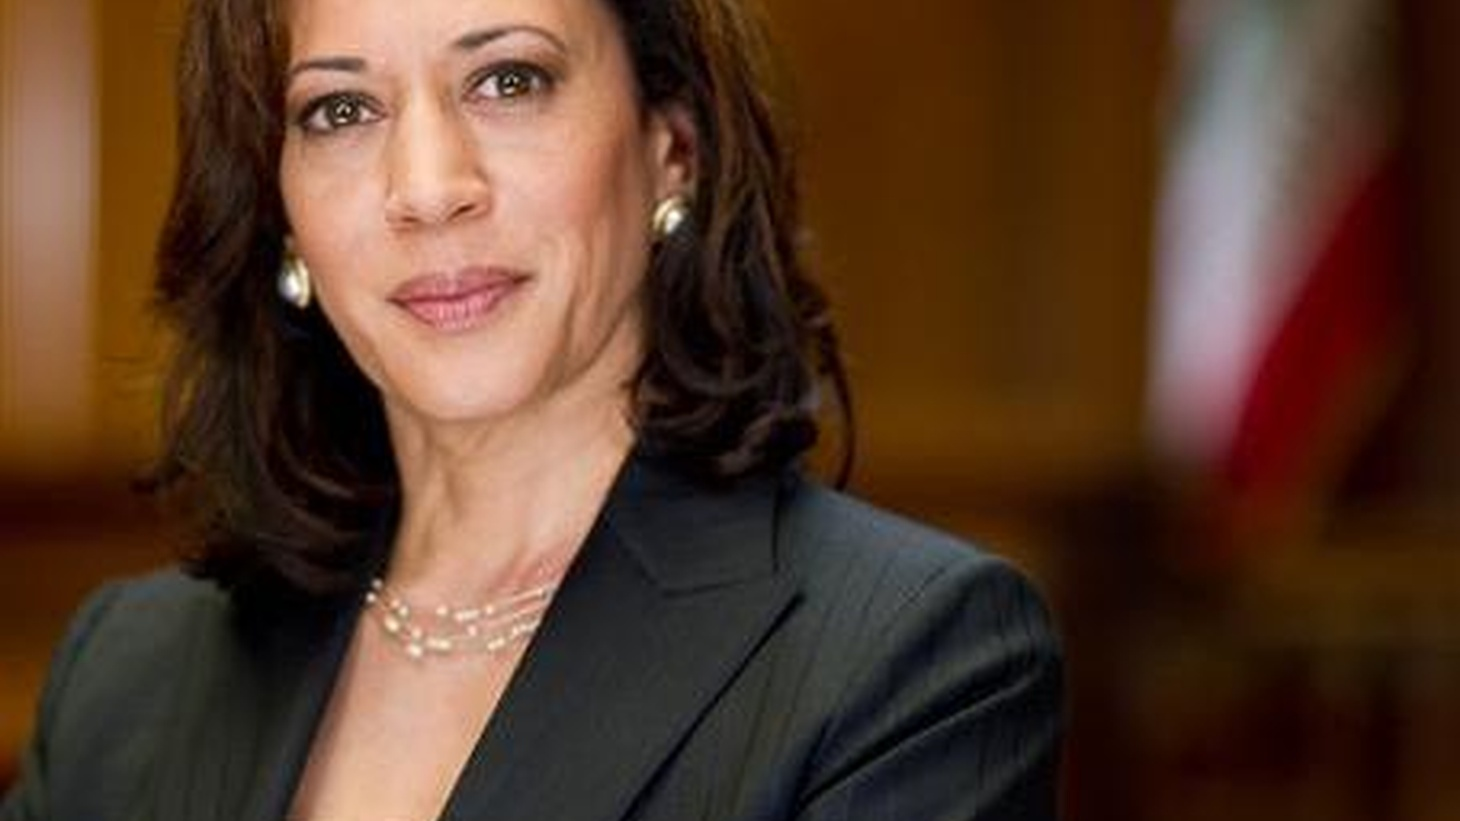 Kamala Harris, who won the race for state Attorney General last month by a fraction of one point, is already a national celebrity. The New York Times says she's one of 17 women with a chance of being President. But how many Southern Californians know what she stands for? We talk with her about her background, her priorities and her ambitions. Also, the 9th Circuit Court of Appeals heard arguments today on Prop 8. Will it reverse the judge who called a ban on gay marriage unconstitutional. On our rebroadcast of To the Point, holiday shopping, China and economic recovery.